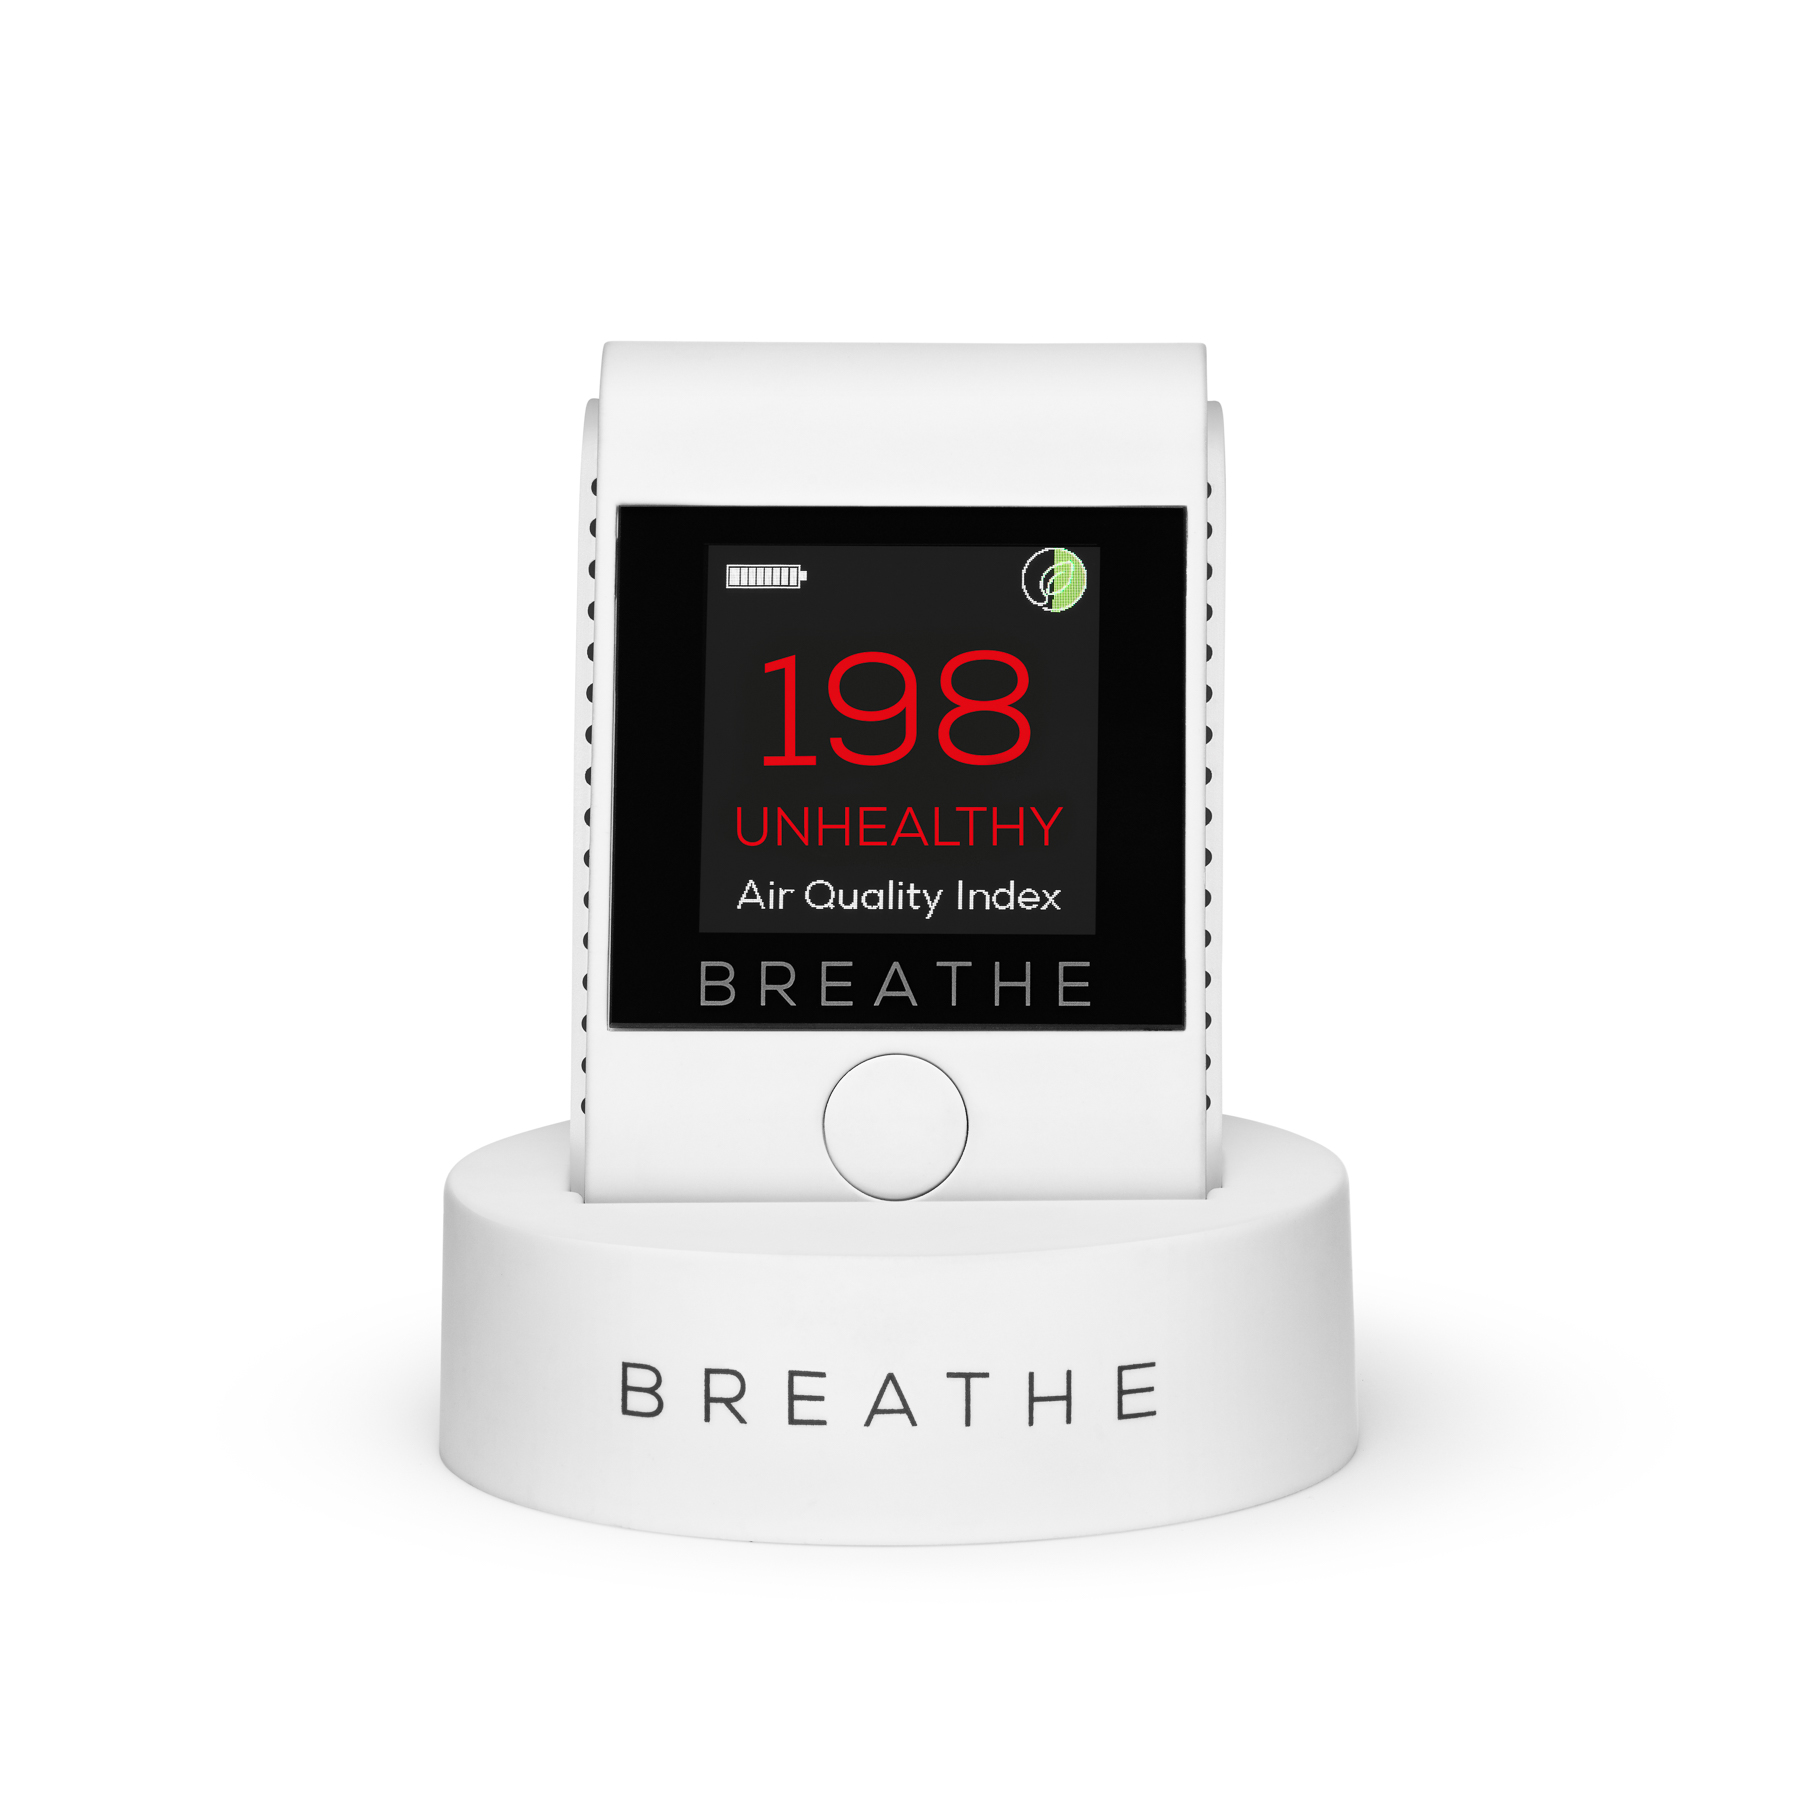 BREATHE Smart air quality monitor front bad.jpg